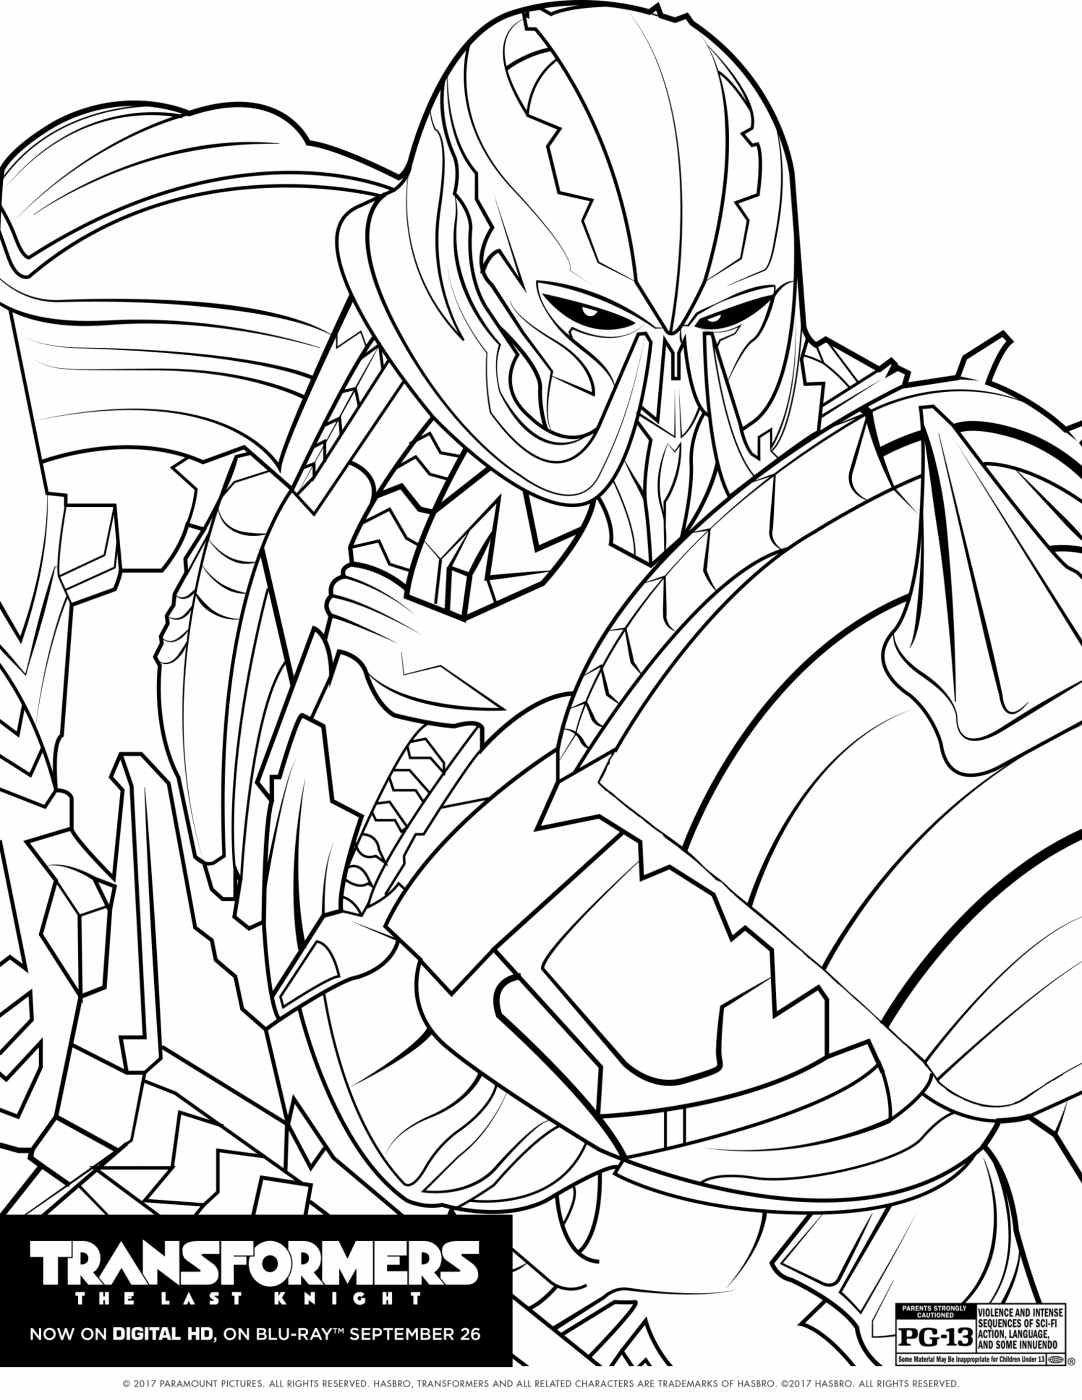 transformers the last knight coloring sheet - Knight Coloring Pages